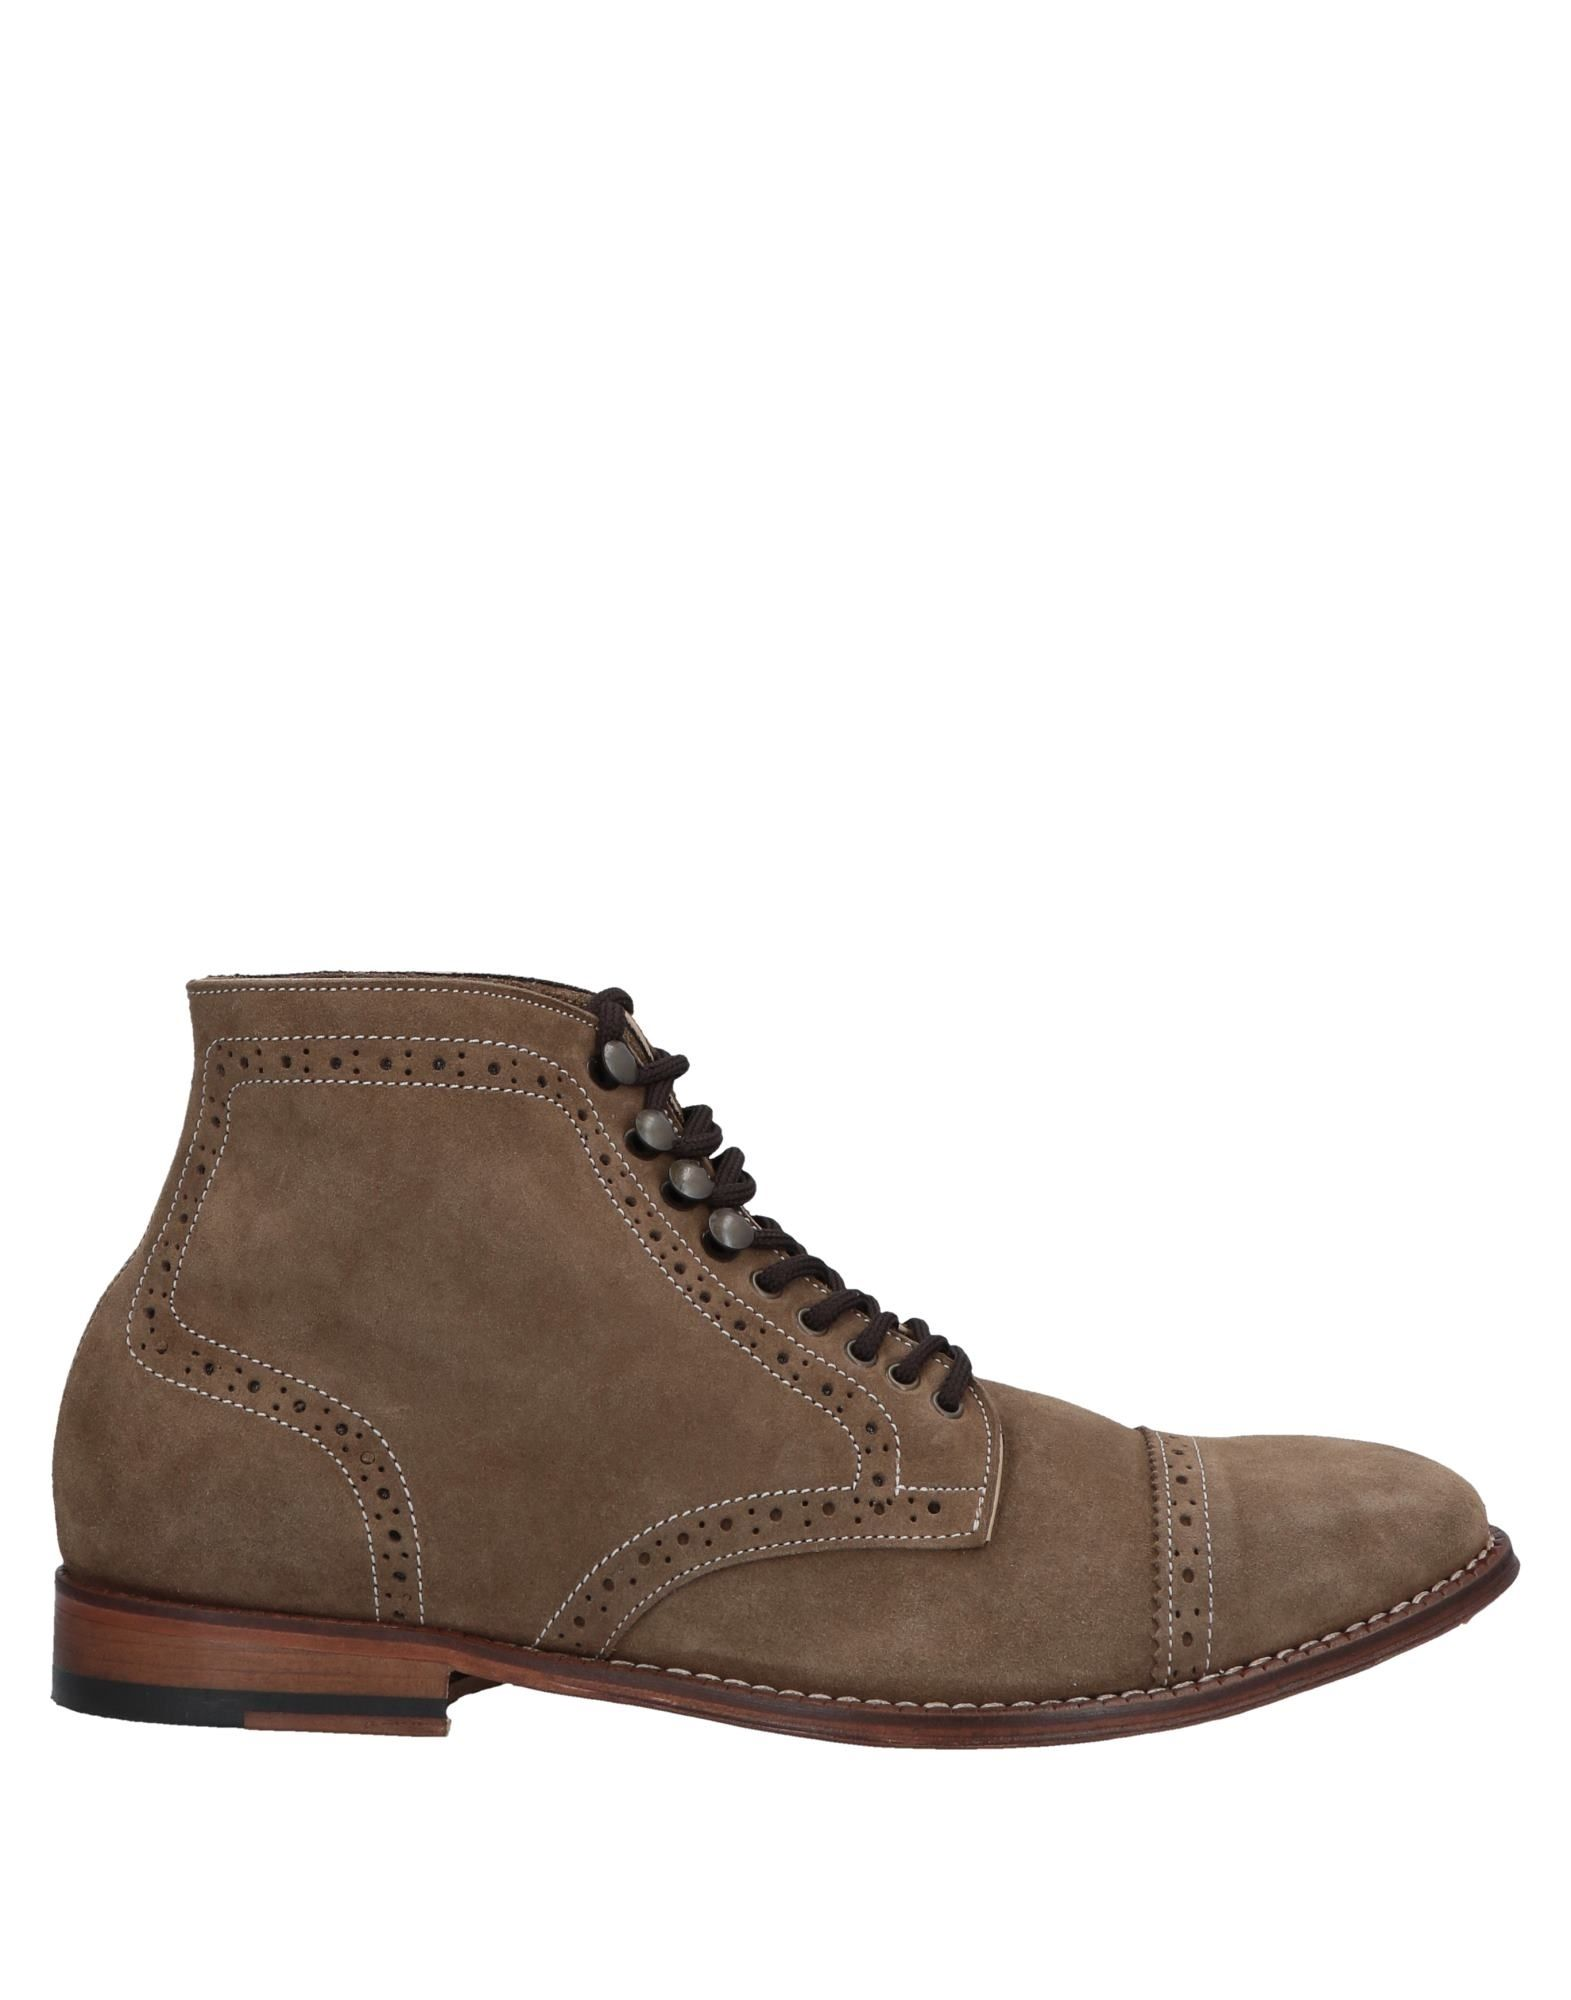 Brian Dales Boots Boots